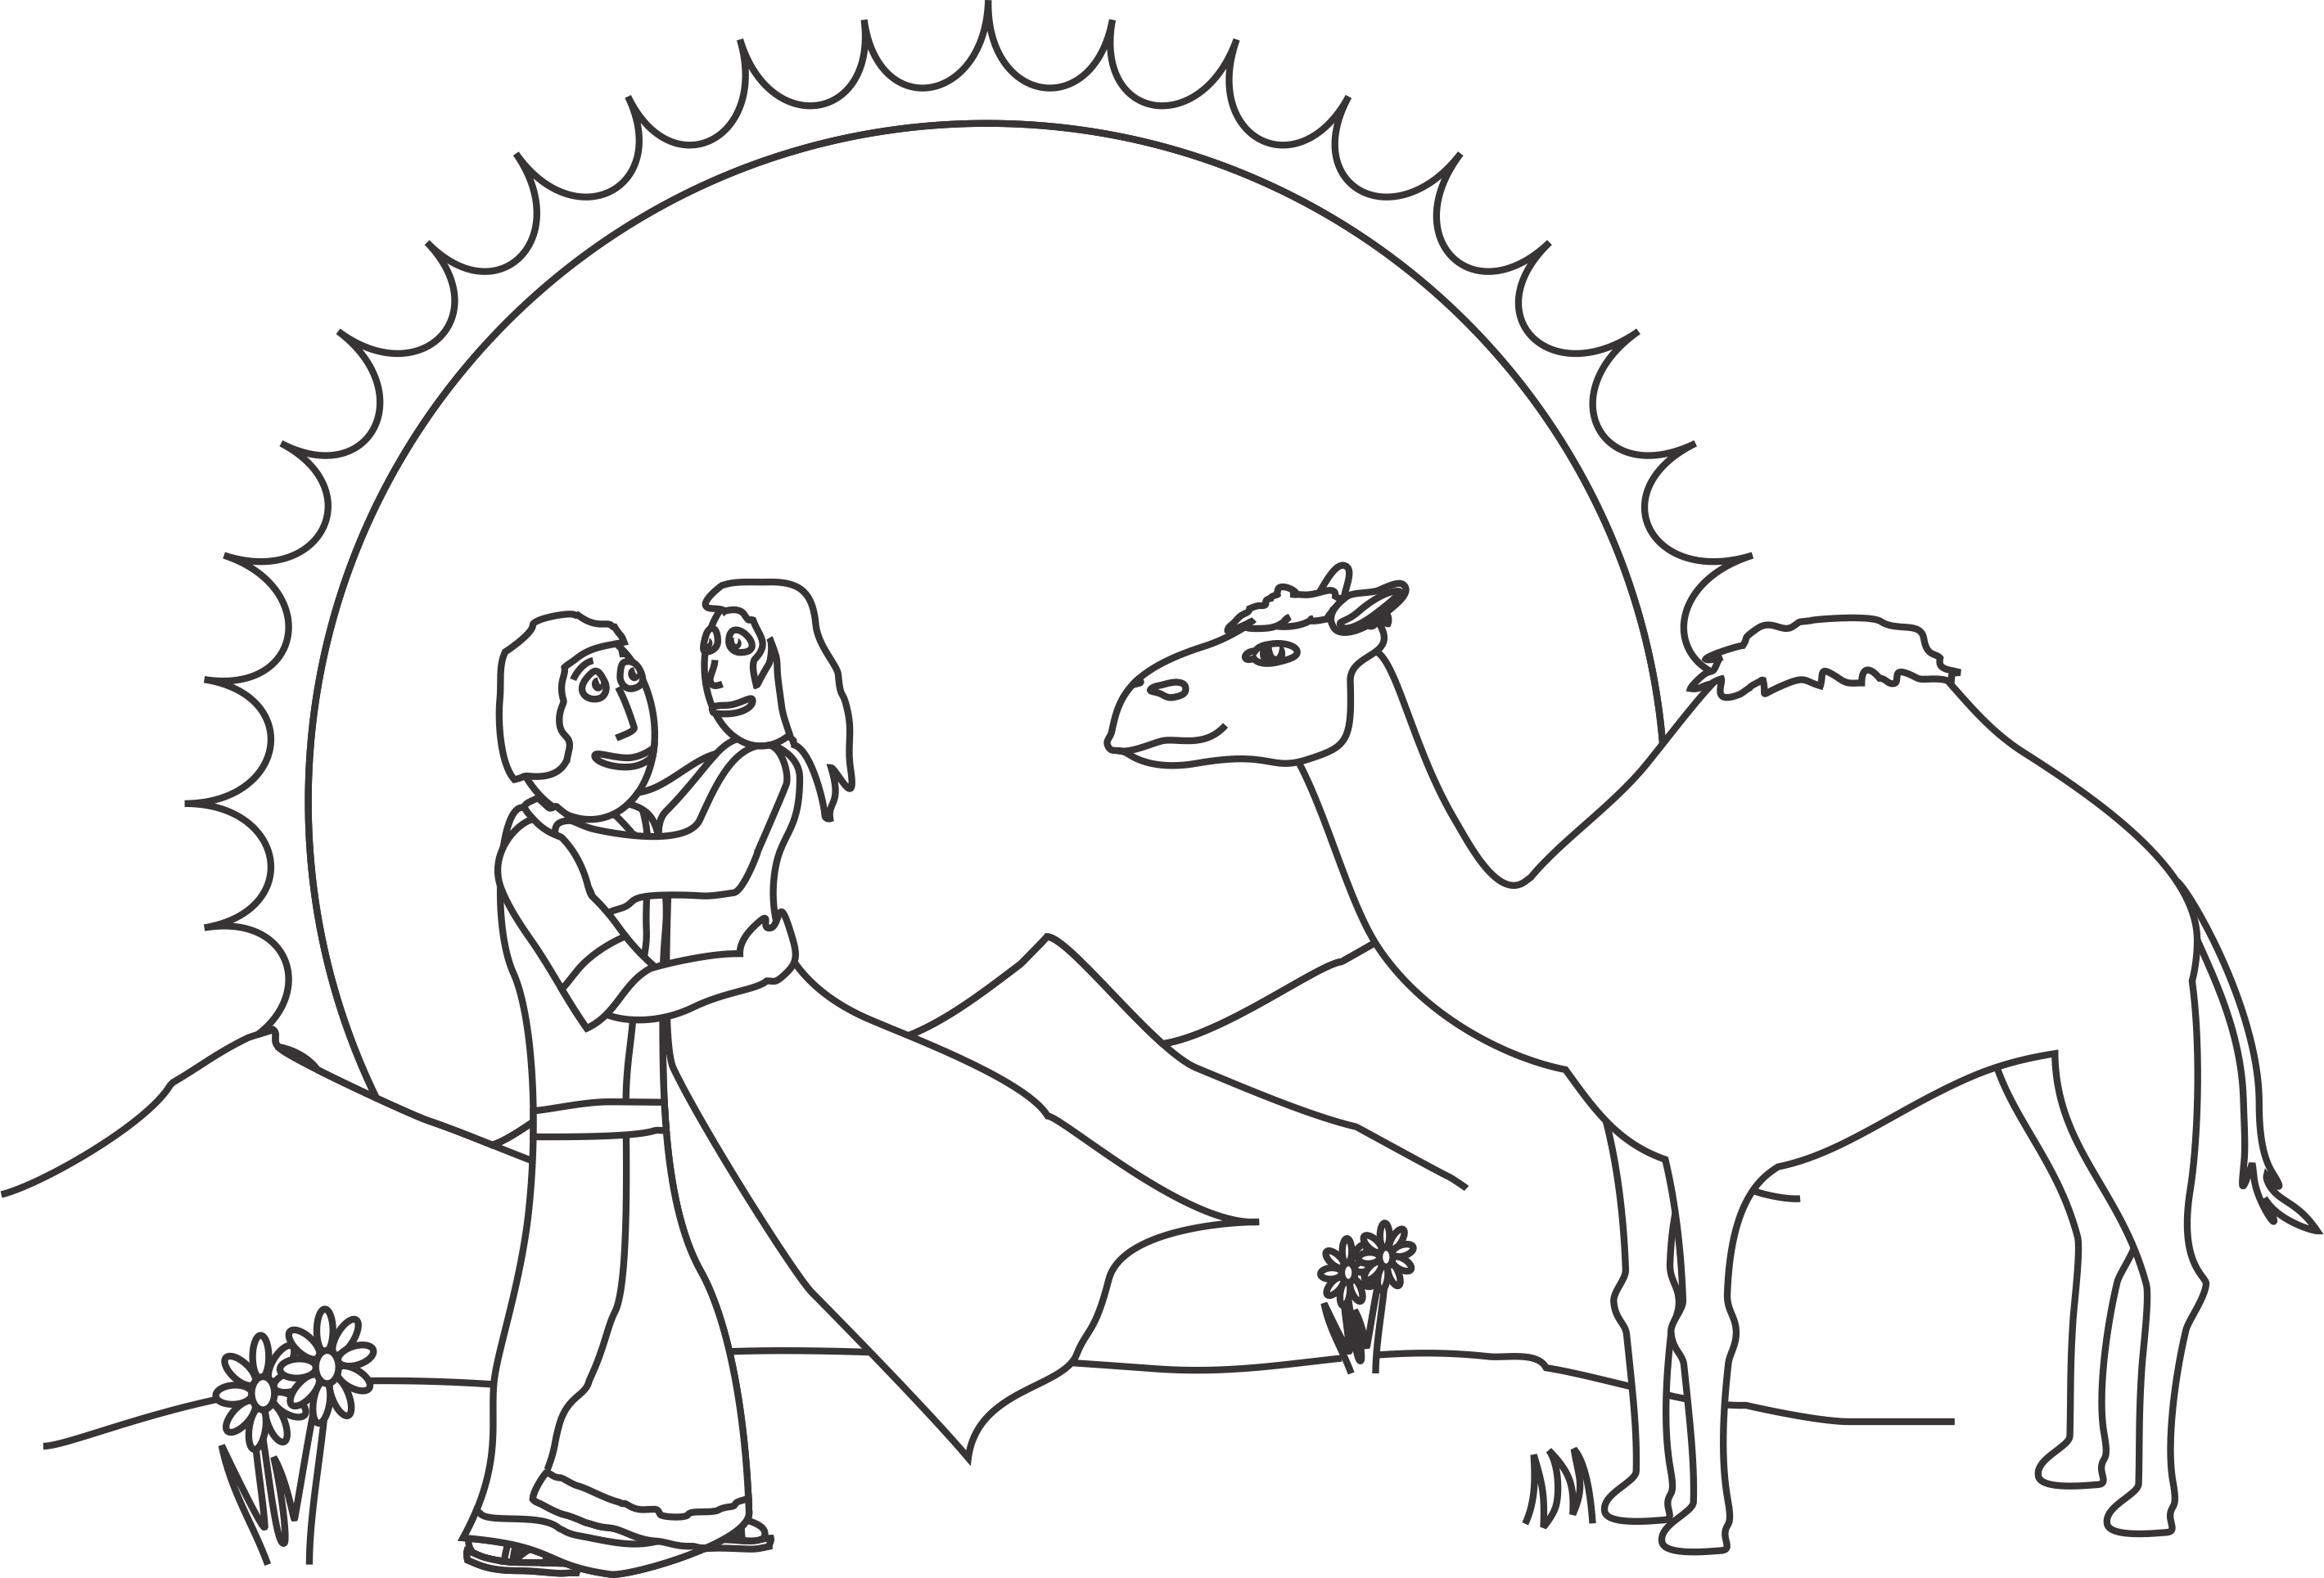 isaac and rebekah coloring pages isaac and rebekah coloring page at getcoloringscom free coloring pages isaac and rebekah